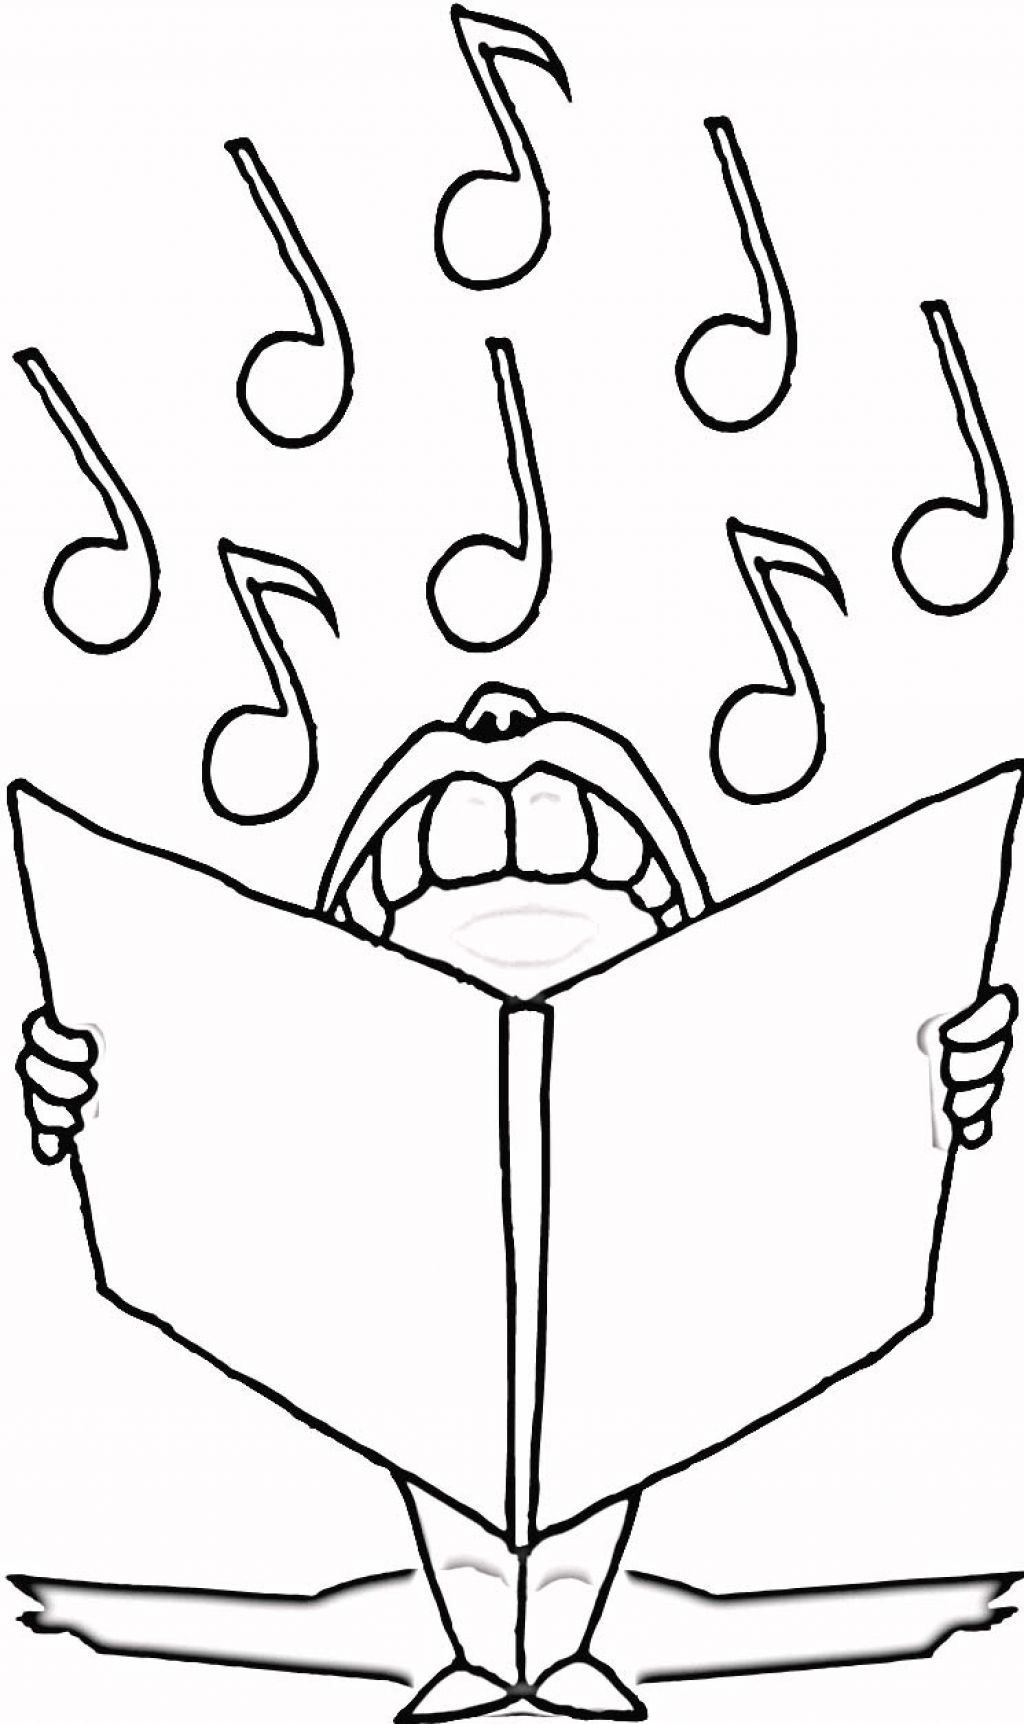 It is a picture of Revered Musical Coloring Page